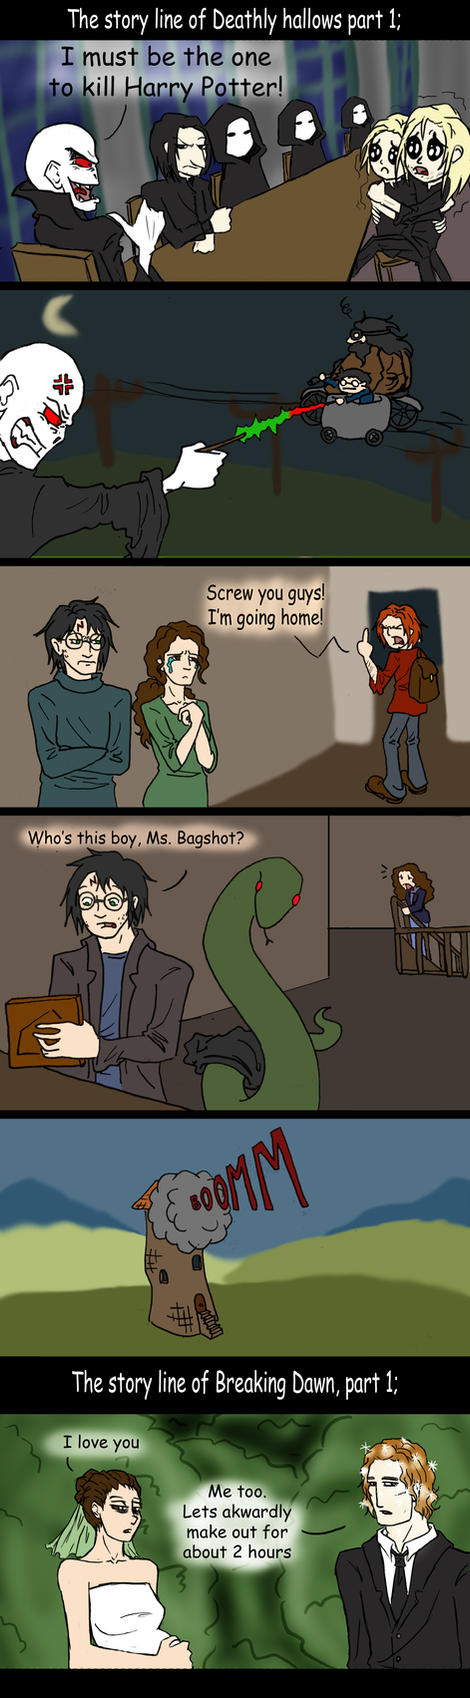 harry potter vs twilight by thegreatestfrog on deviantart